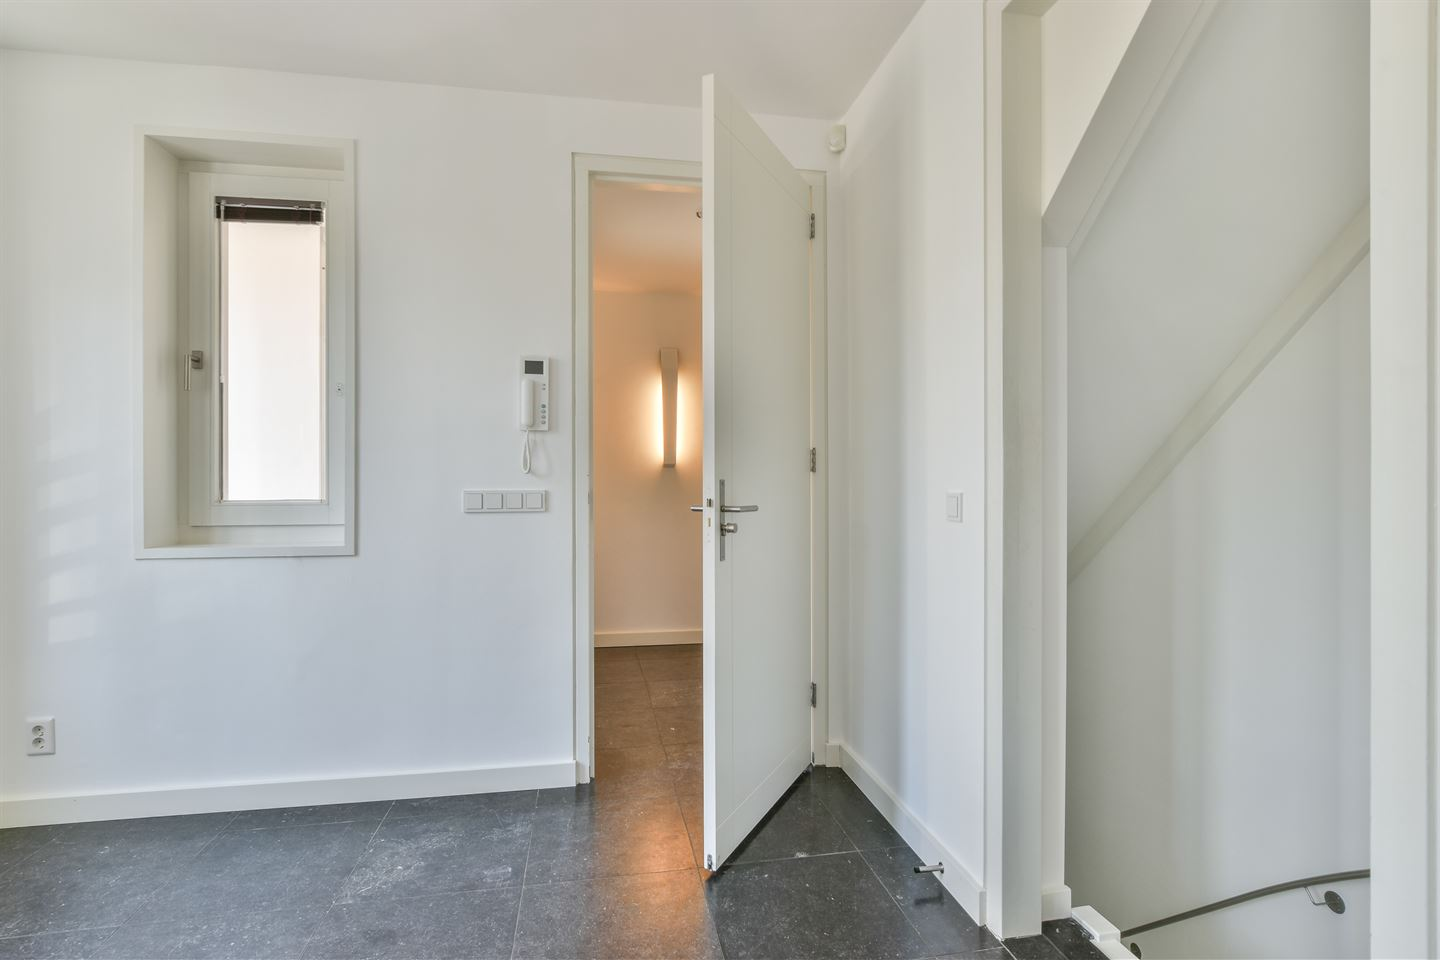 View photo 4 of Plantage Muidergracht 105 A